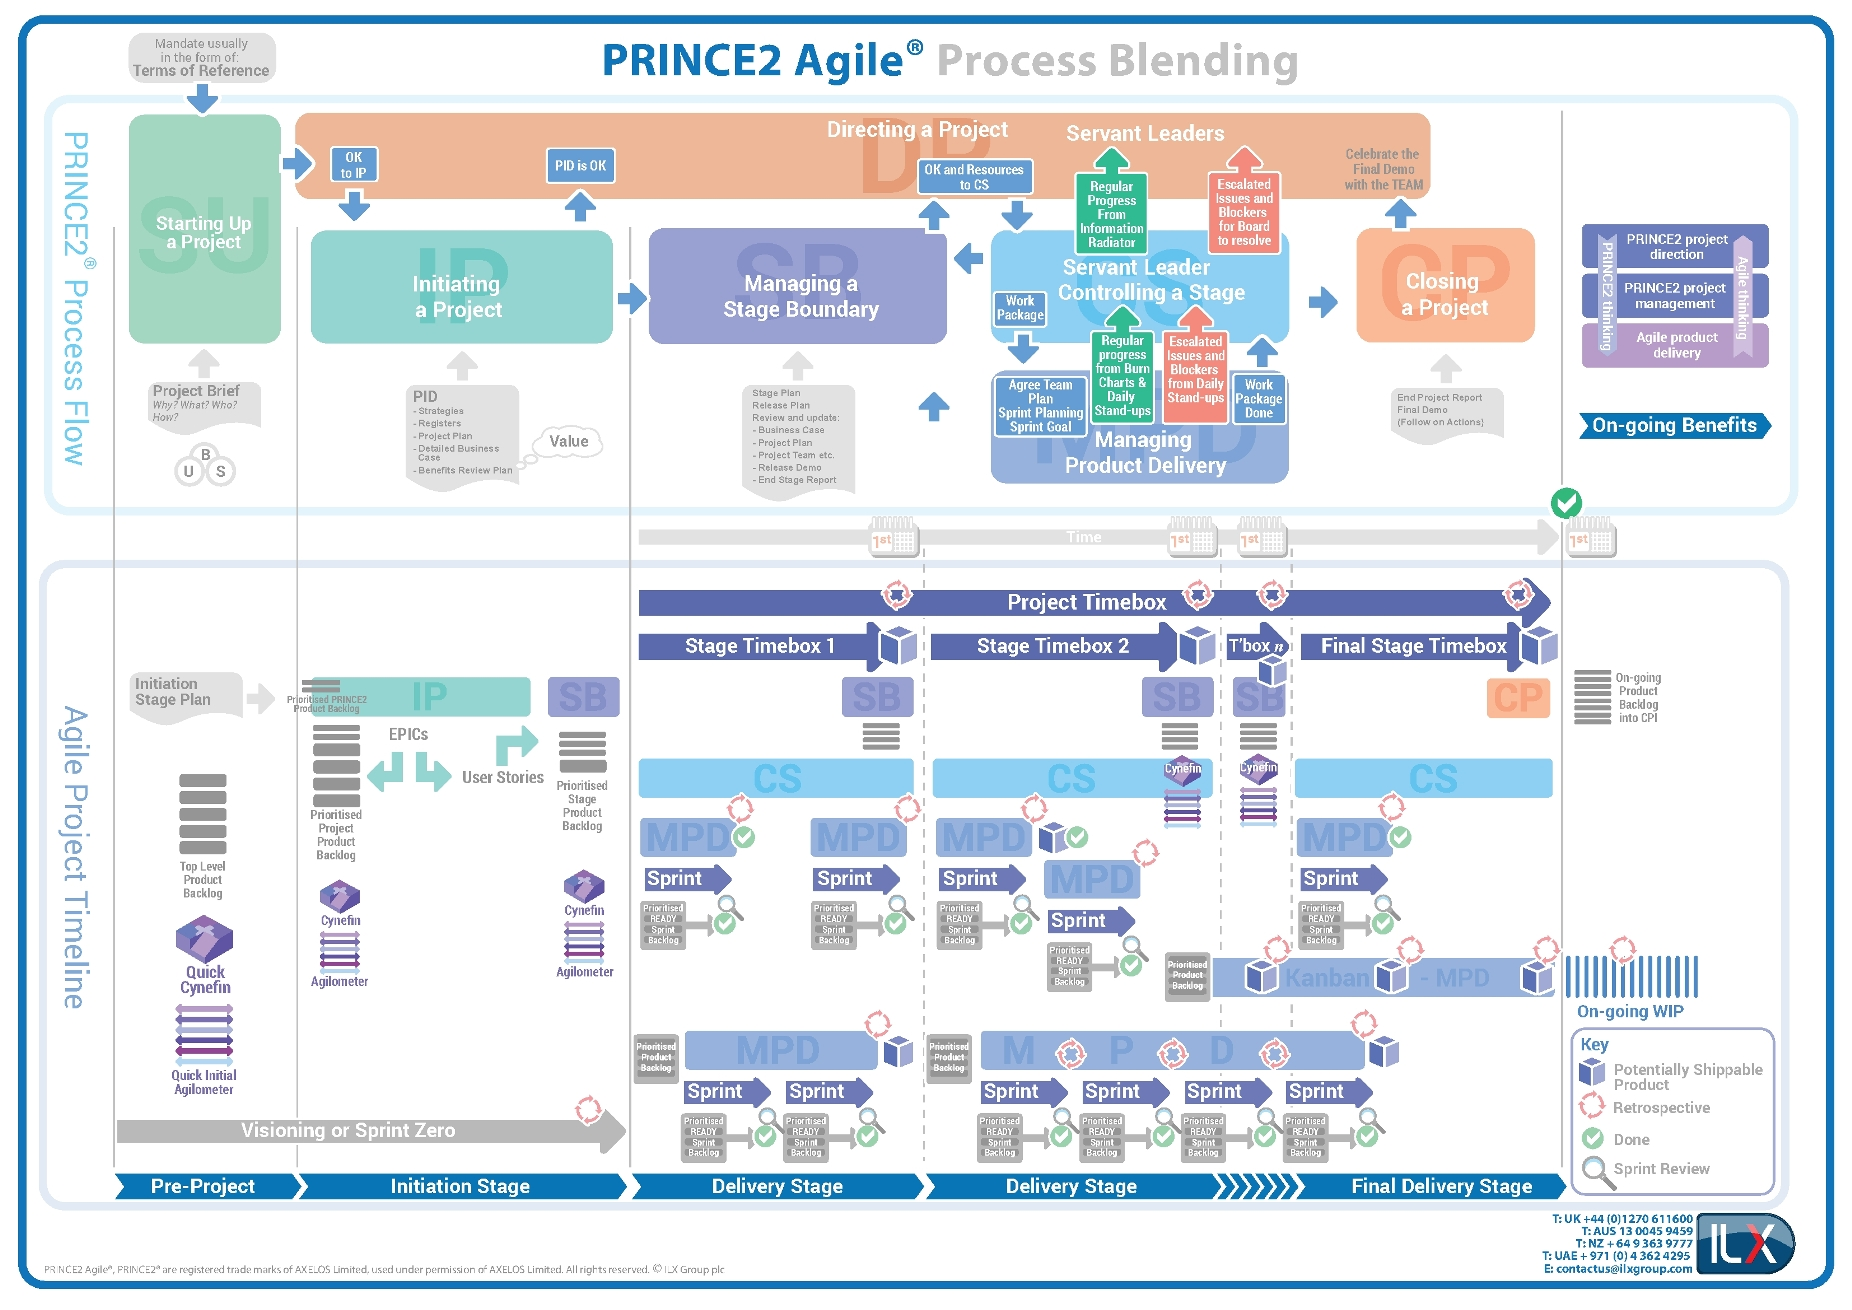 PRINCE2 Agile® Process Map